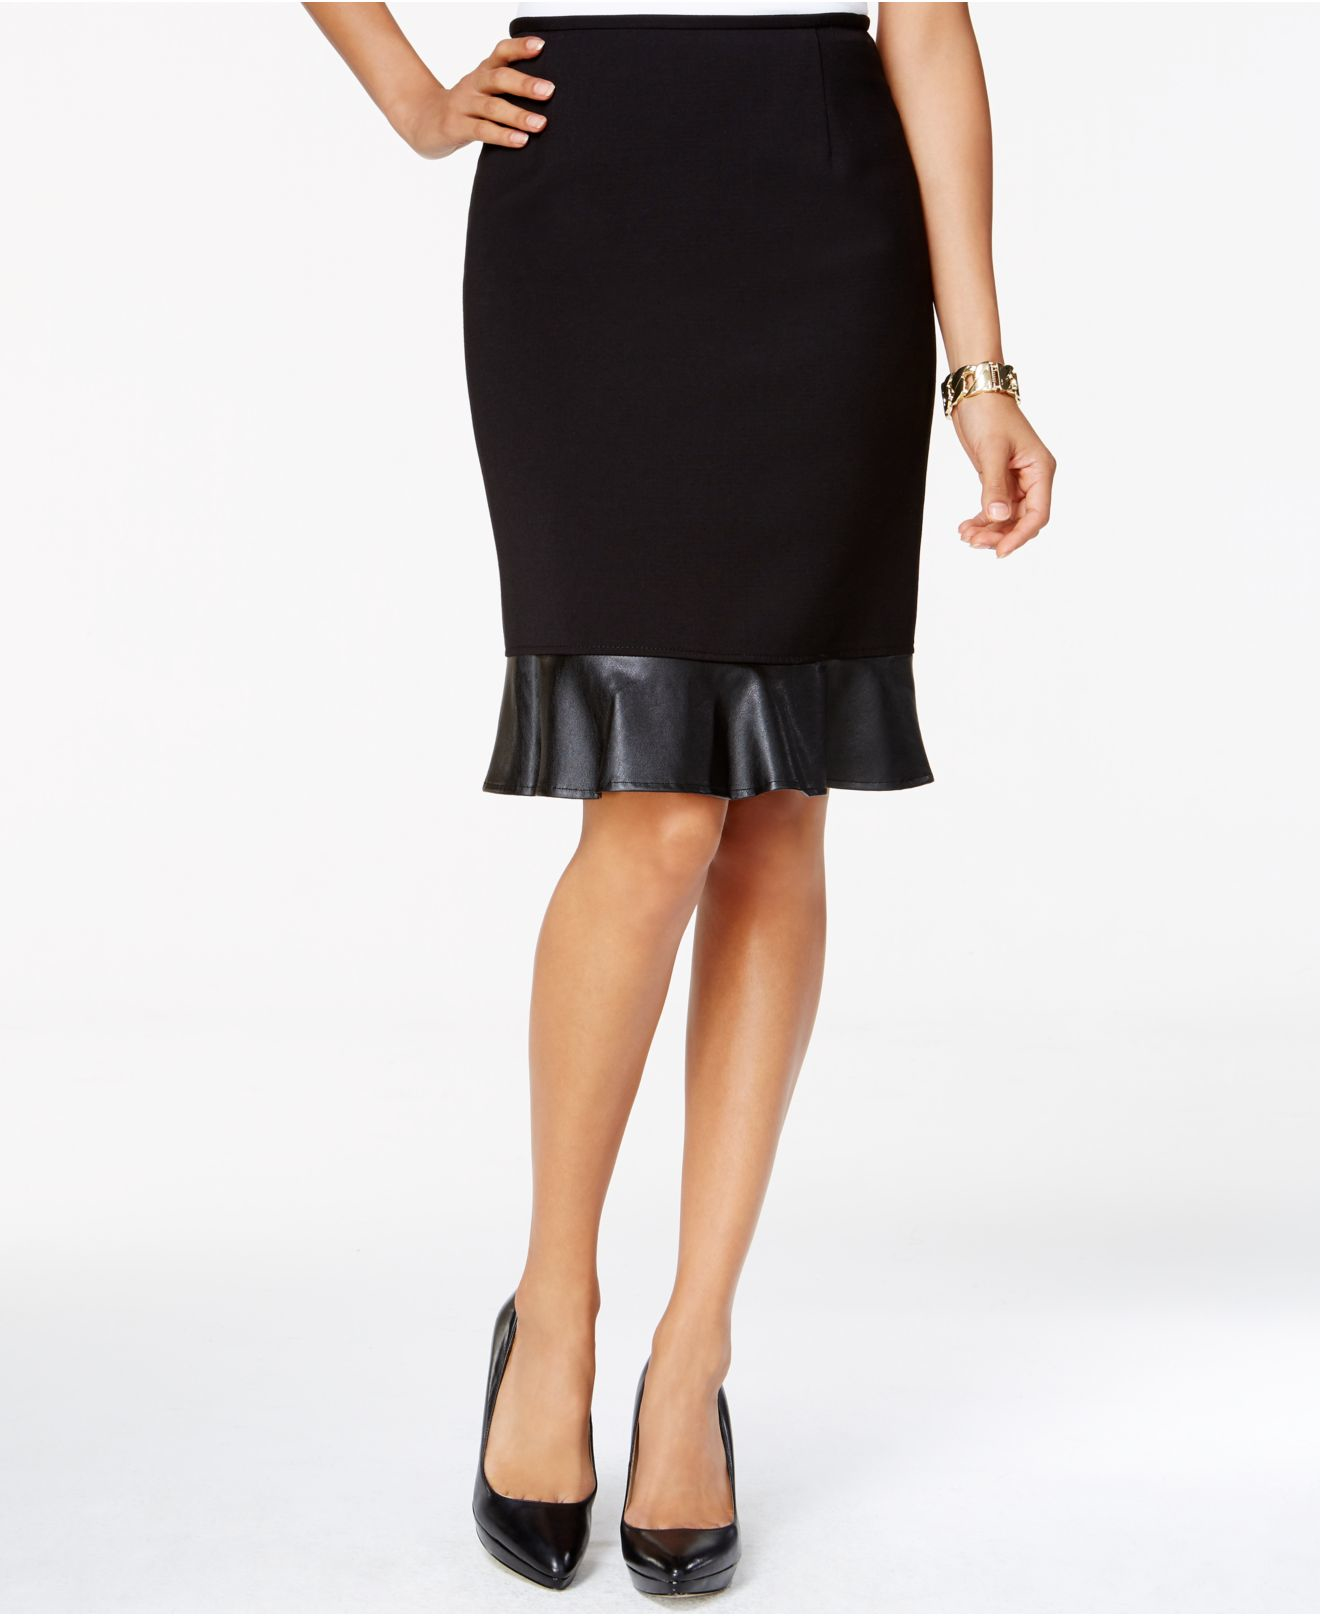 Tahari Petite Faux-leather Pencil Skirt in Black | Lyst